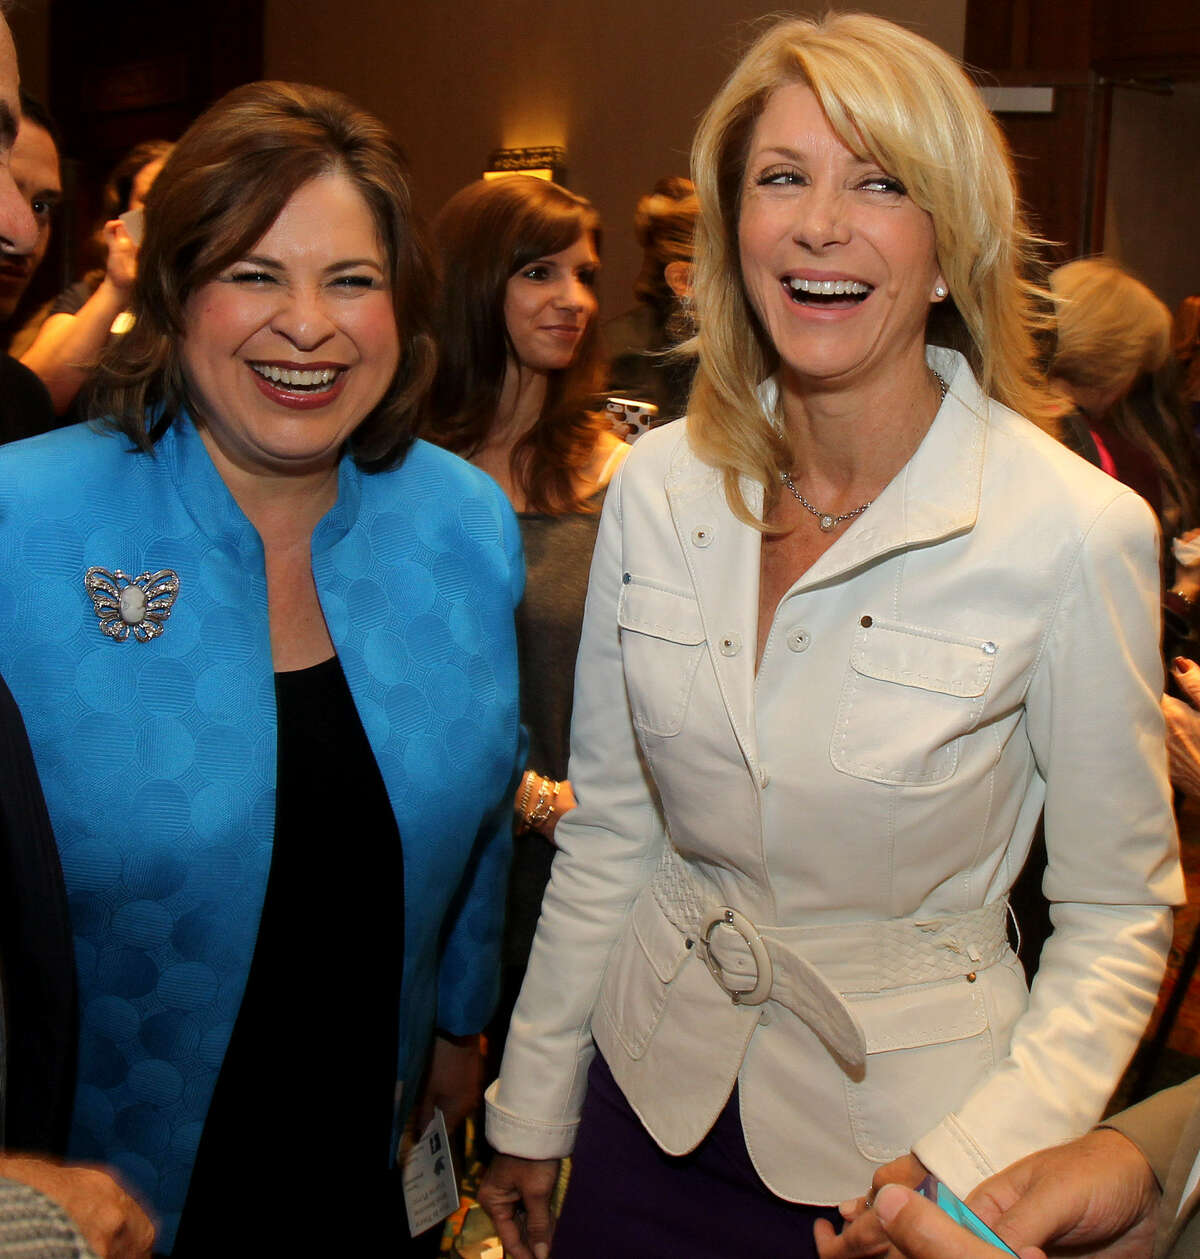 State Sen. Leticia Van de Putte rushed off a Houston stage Thursday evening to assist a woman who had fainted during a speech by state Sen. Wendy Davis. Get to know Leticia Van de Putte.Van de Putte (left) and Davis greeted supporters at a luncheon in San Antonio earlier this month.